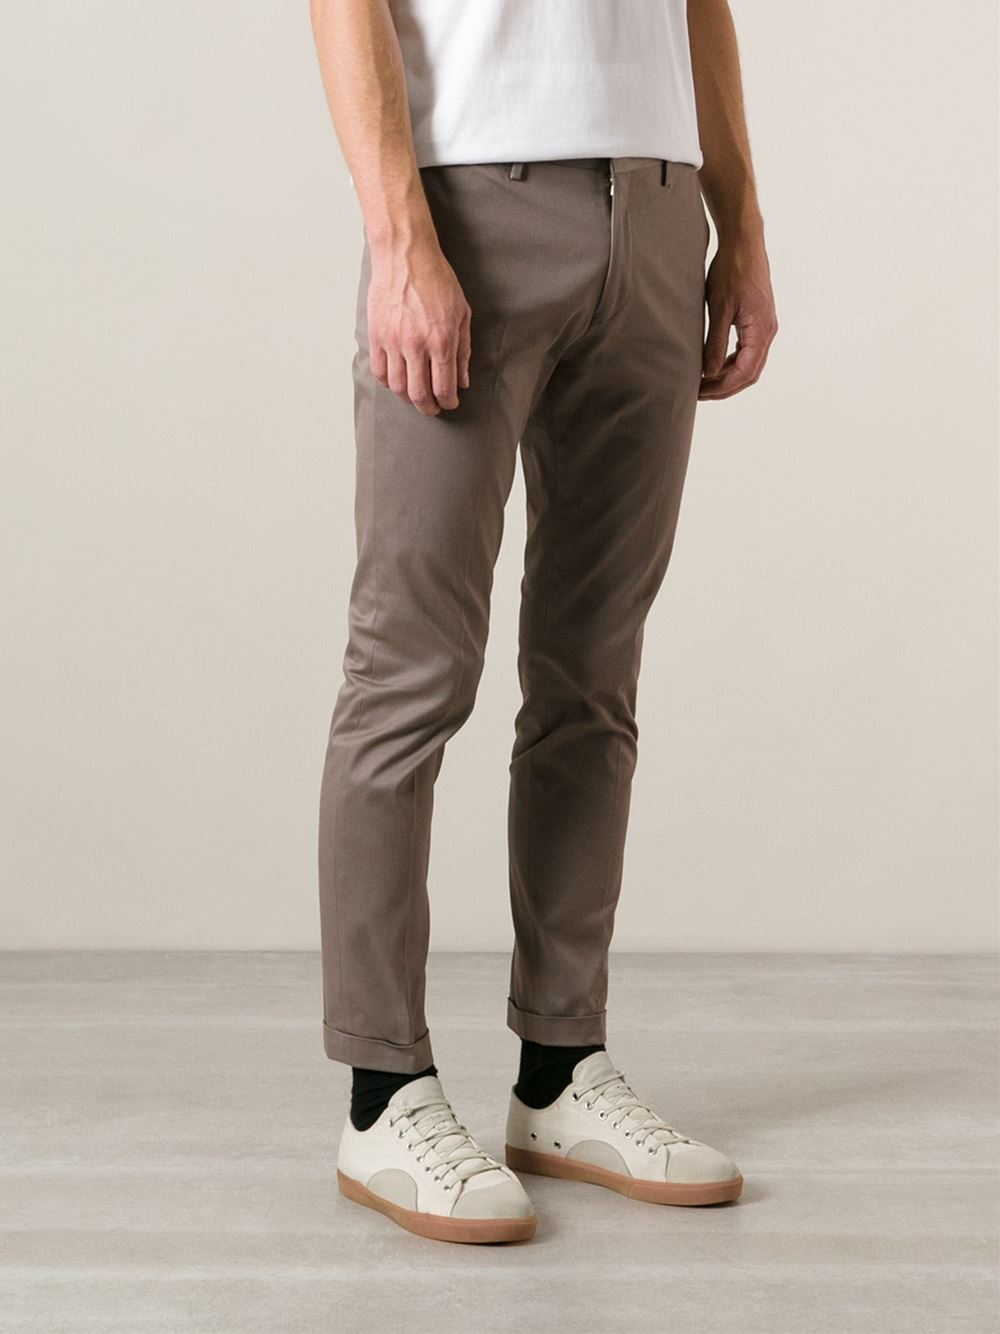 a11ecd649f45e paul-smith-beige-slim-fit-trousers-product-1-22231794-1-536480686-normal.jpeg